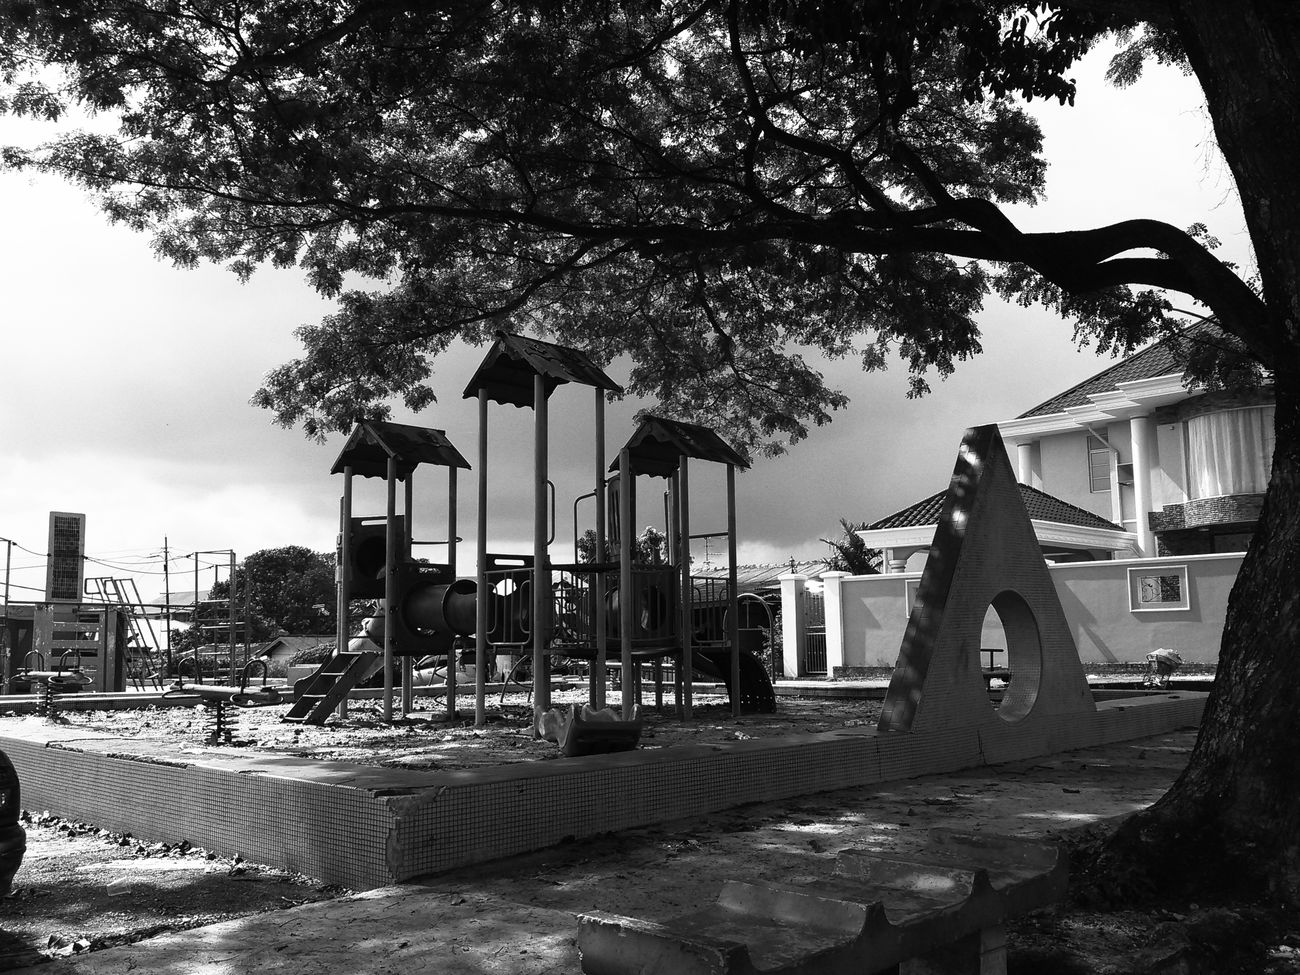 Tree Outdoors No People Sky Day Playgrounds Blackandwhite Rubbish, Waste, Recycling, Hipster Whynot Nature Beach